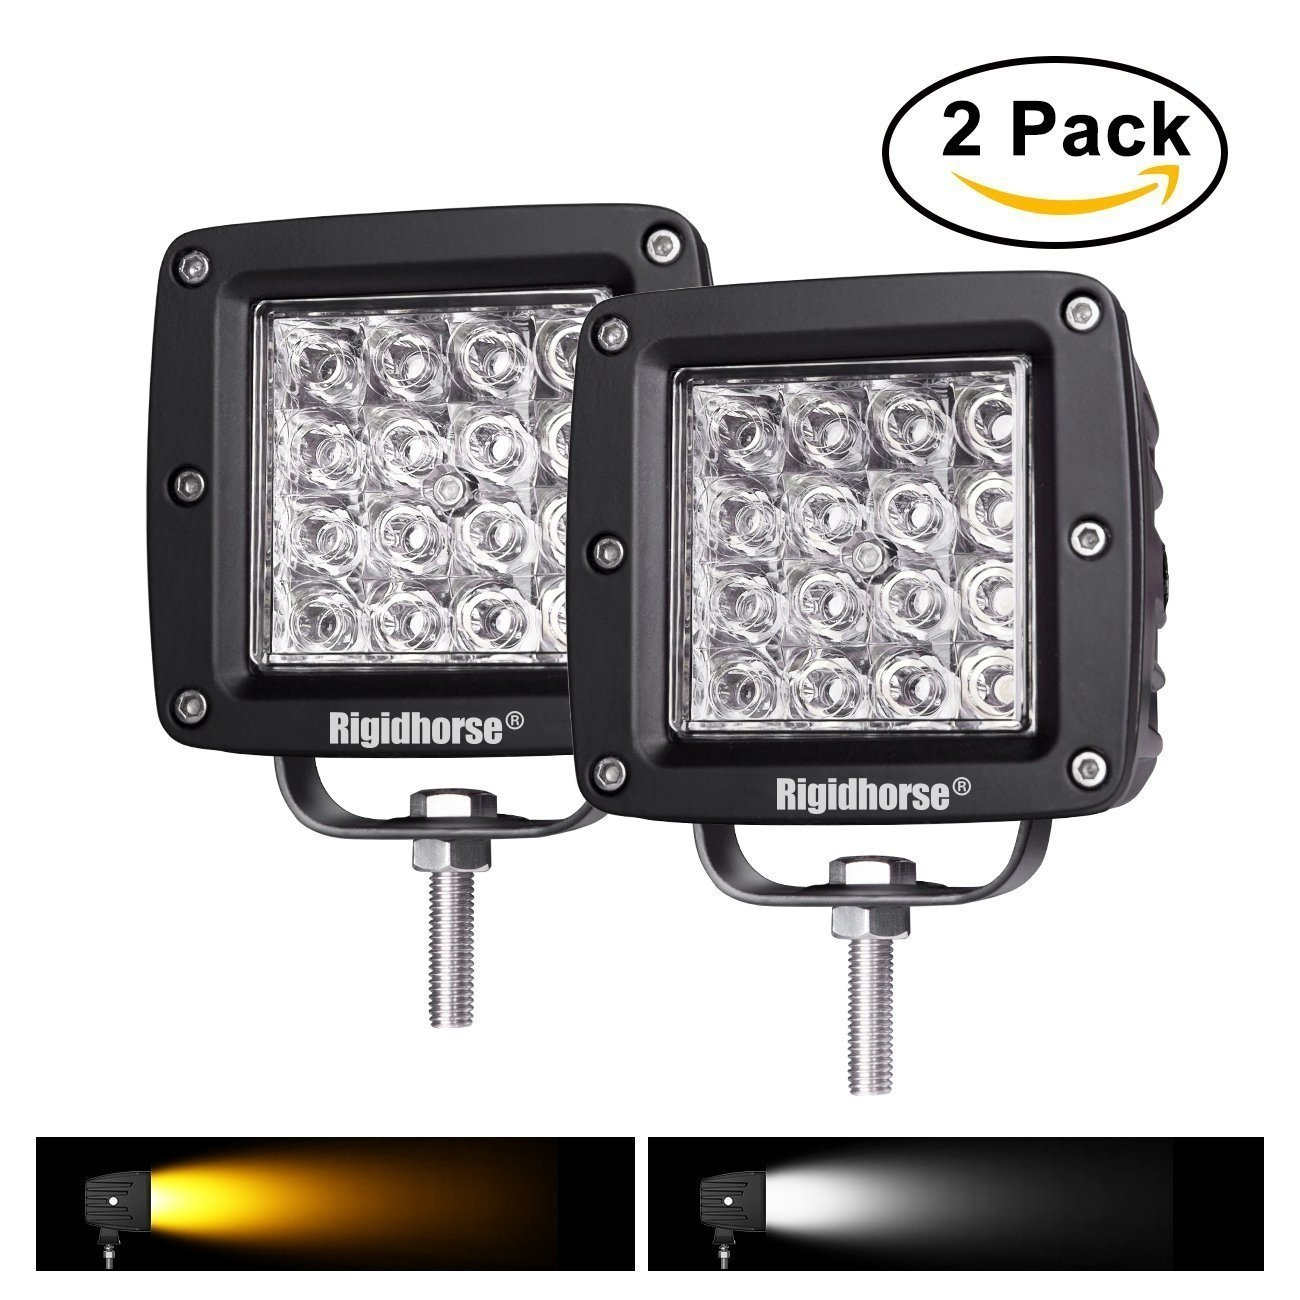 LED Light Pods, Rigidhorse 2 pcs 4 Row 4 Inch 38W Dual-Color White&Yellow Combo LED Light Pods Driving Lights LED Work Light For Jeep/SUV/Trucks With Slidable Mounting Bracket, 2 Year Warranty